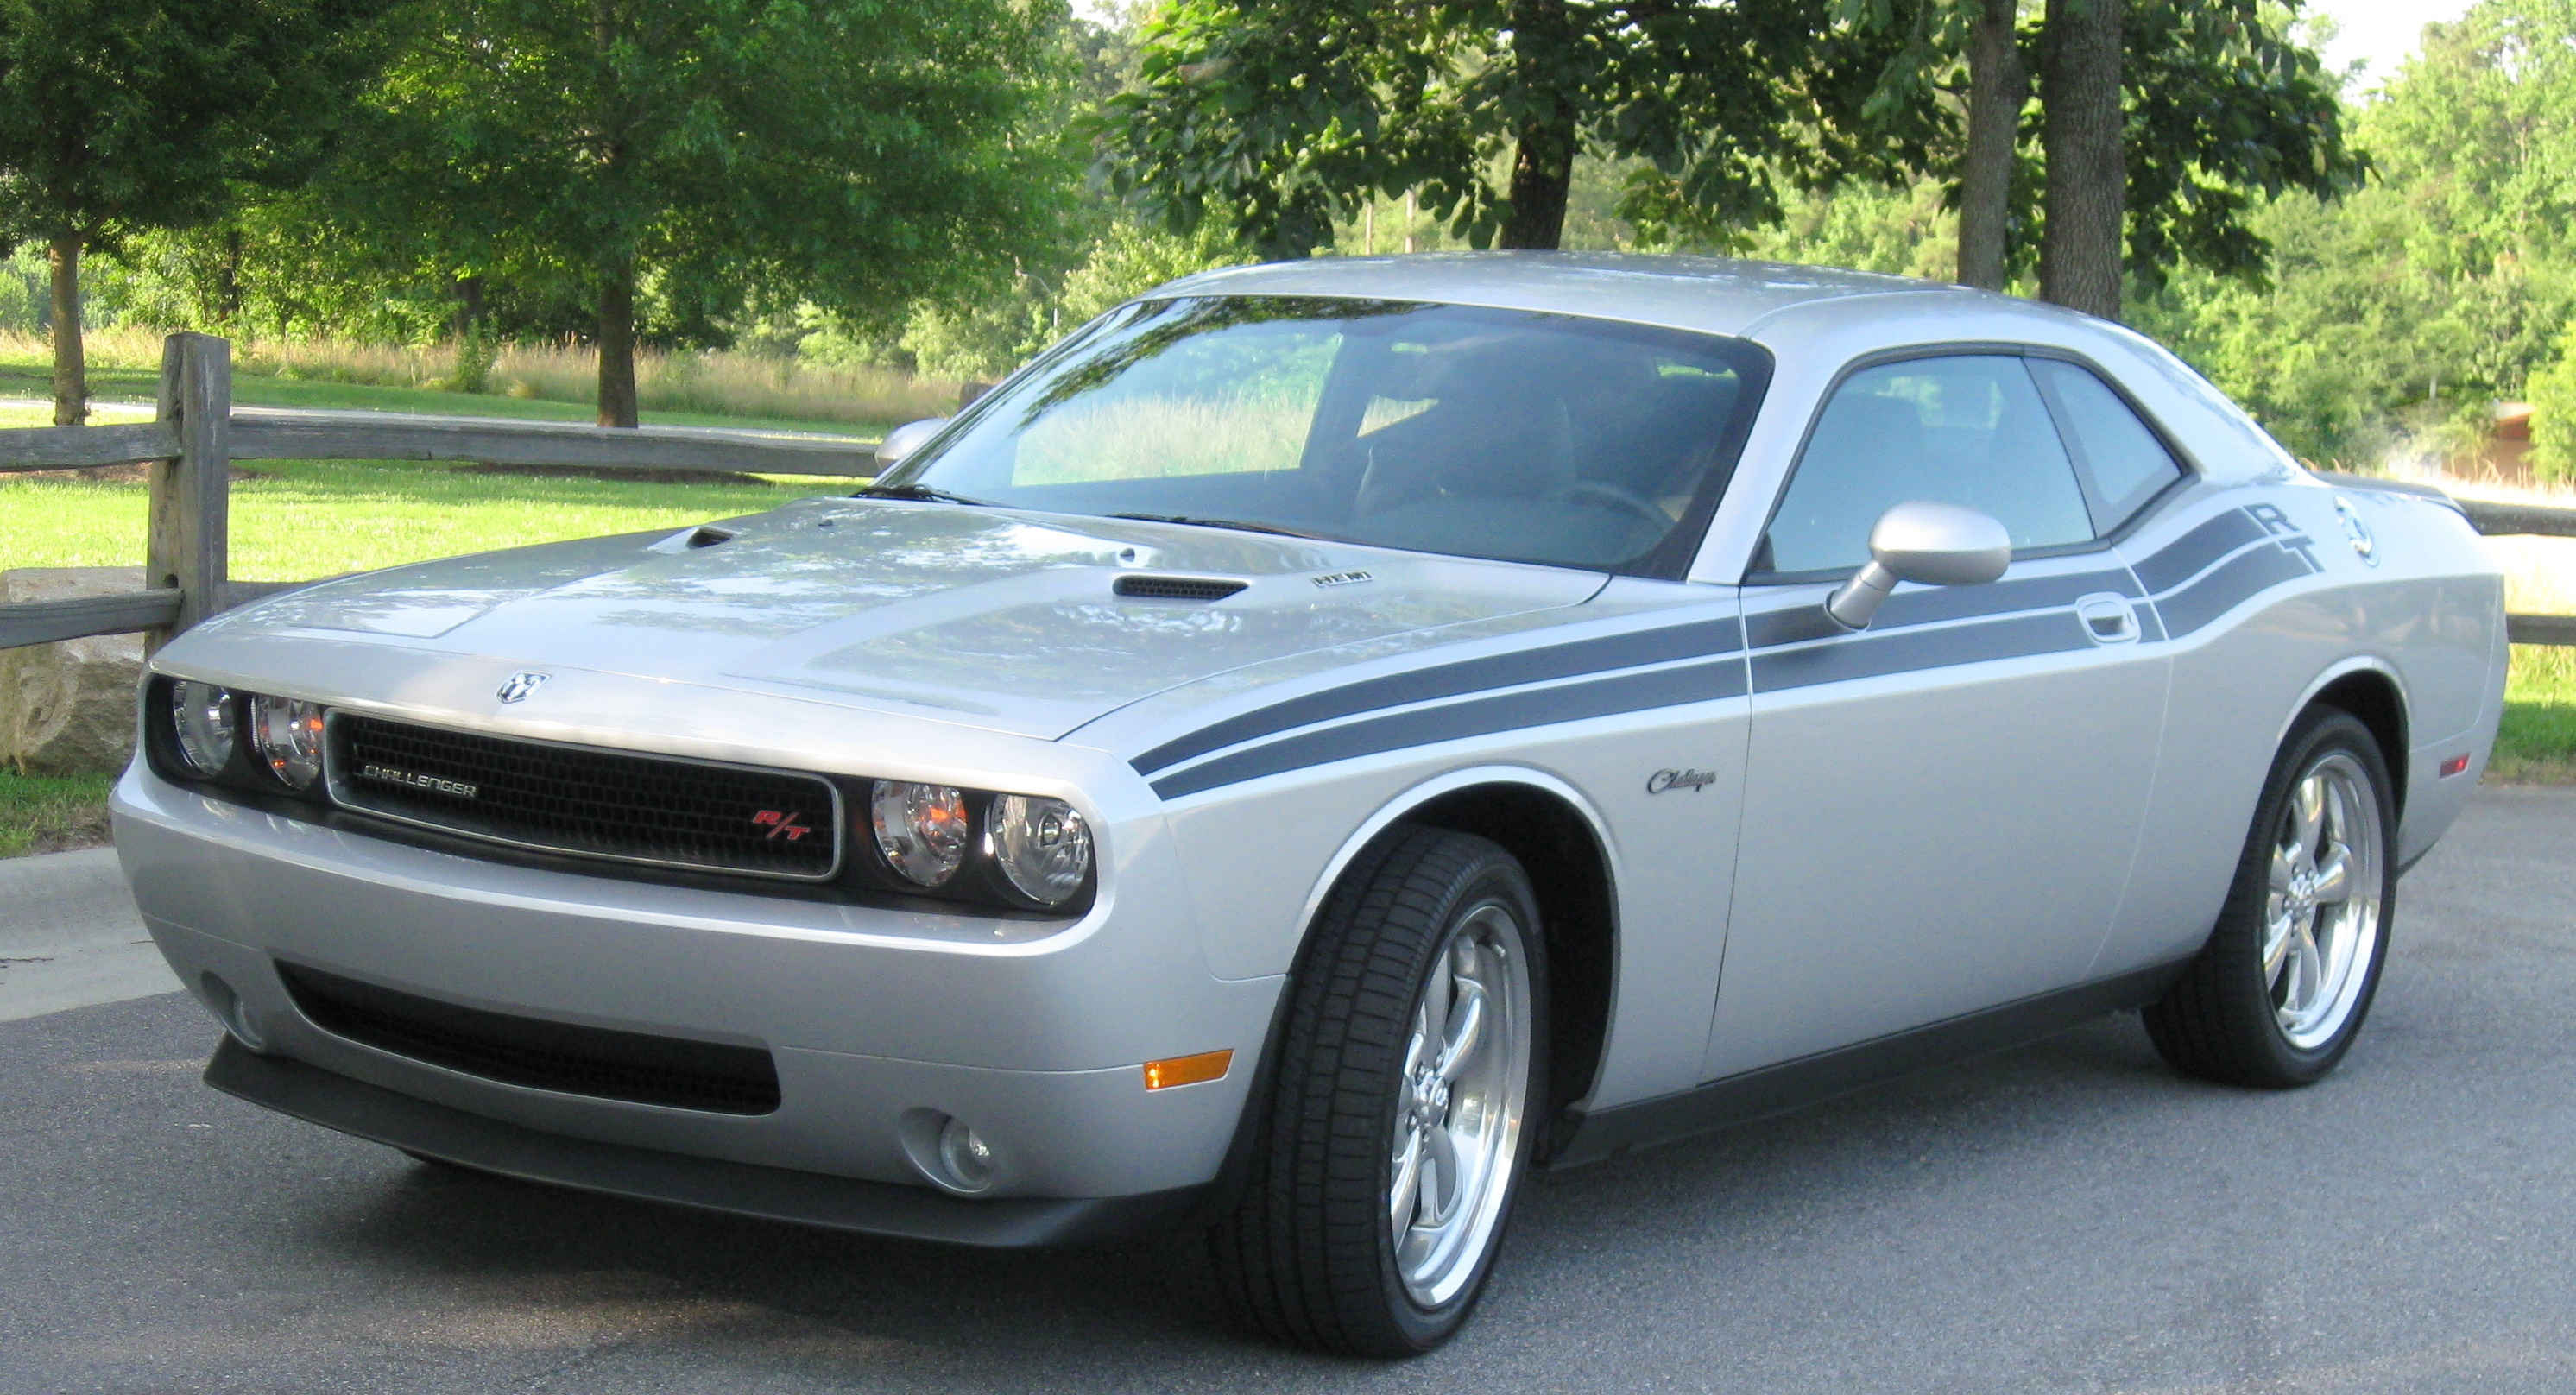 Dodge Challenger RT Classic Division of Chrysler Corporation Wallpaper HD Download